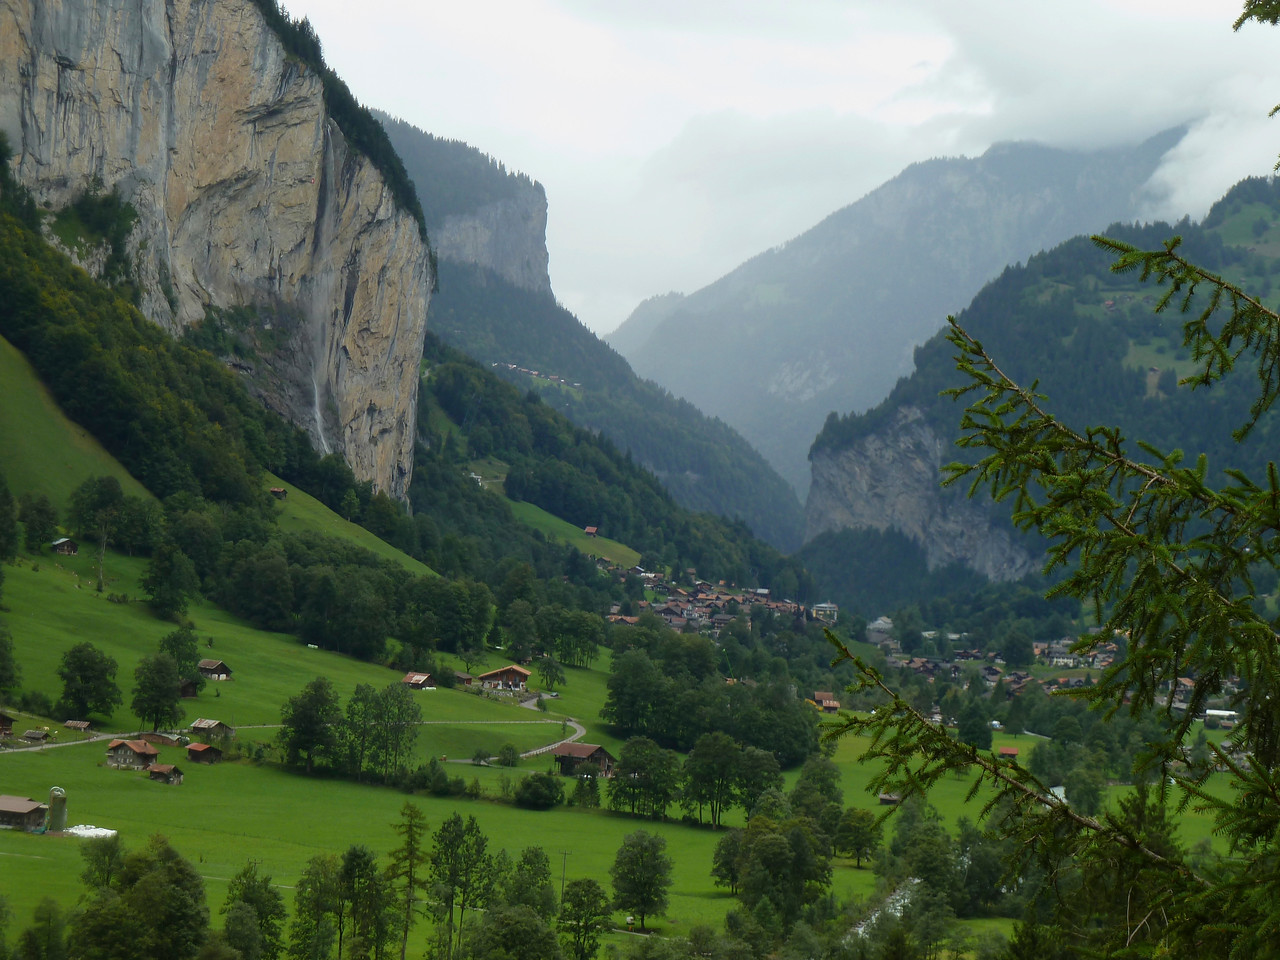 The Lauterbrunnen Valley.